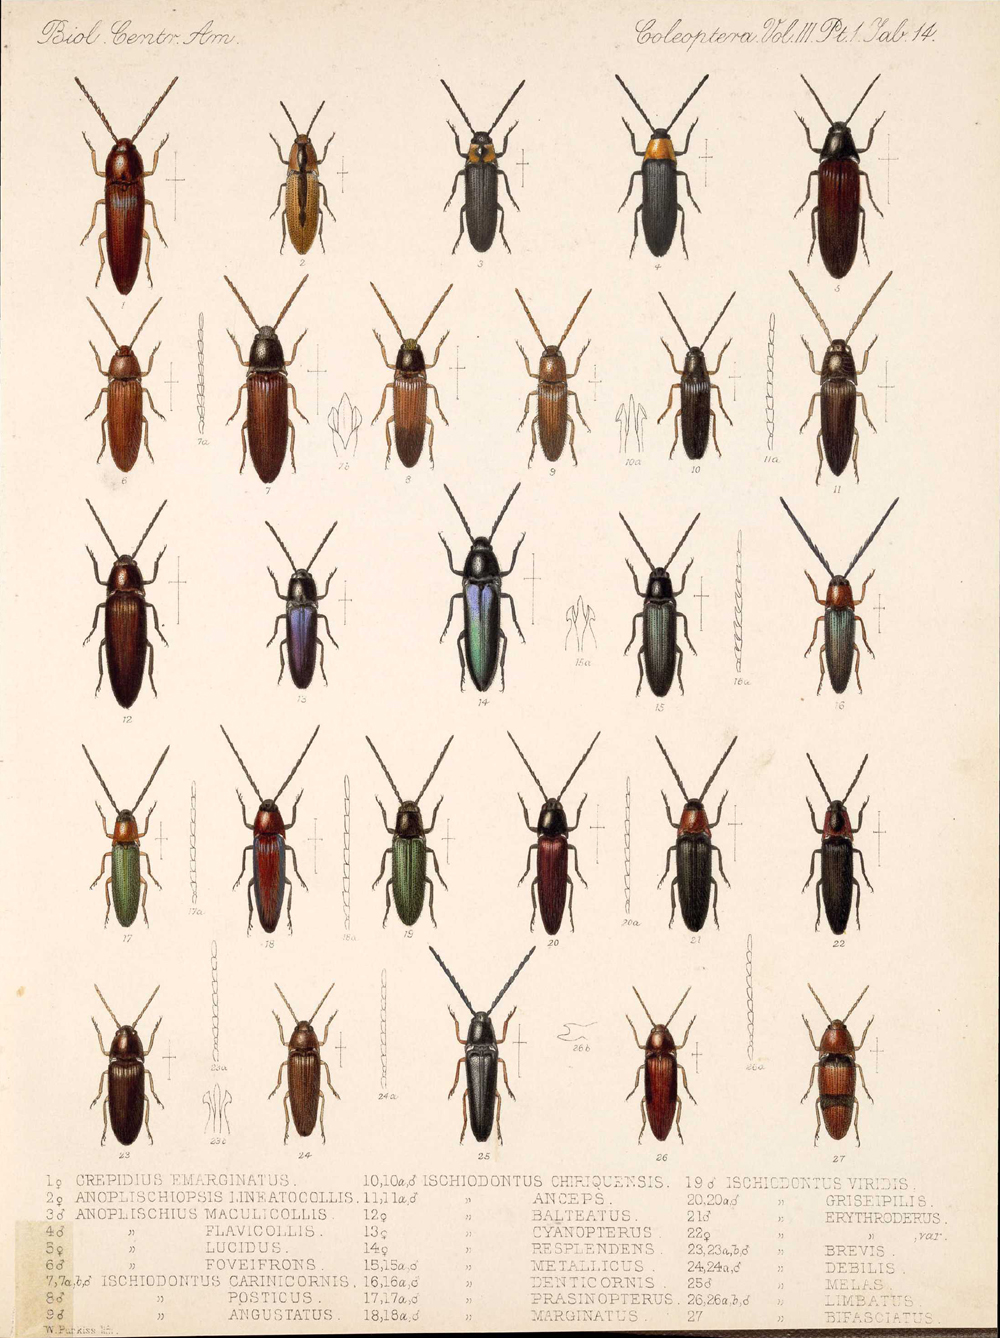 Beetles,  Image number:bca_12_03_01_726